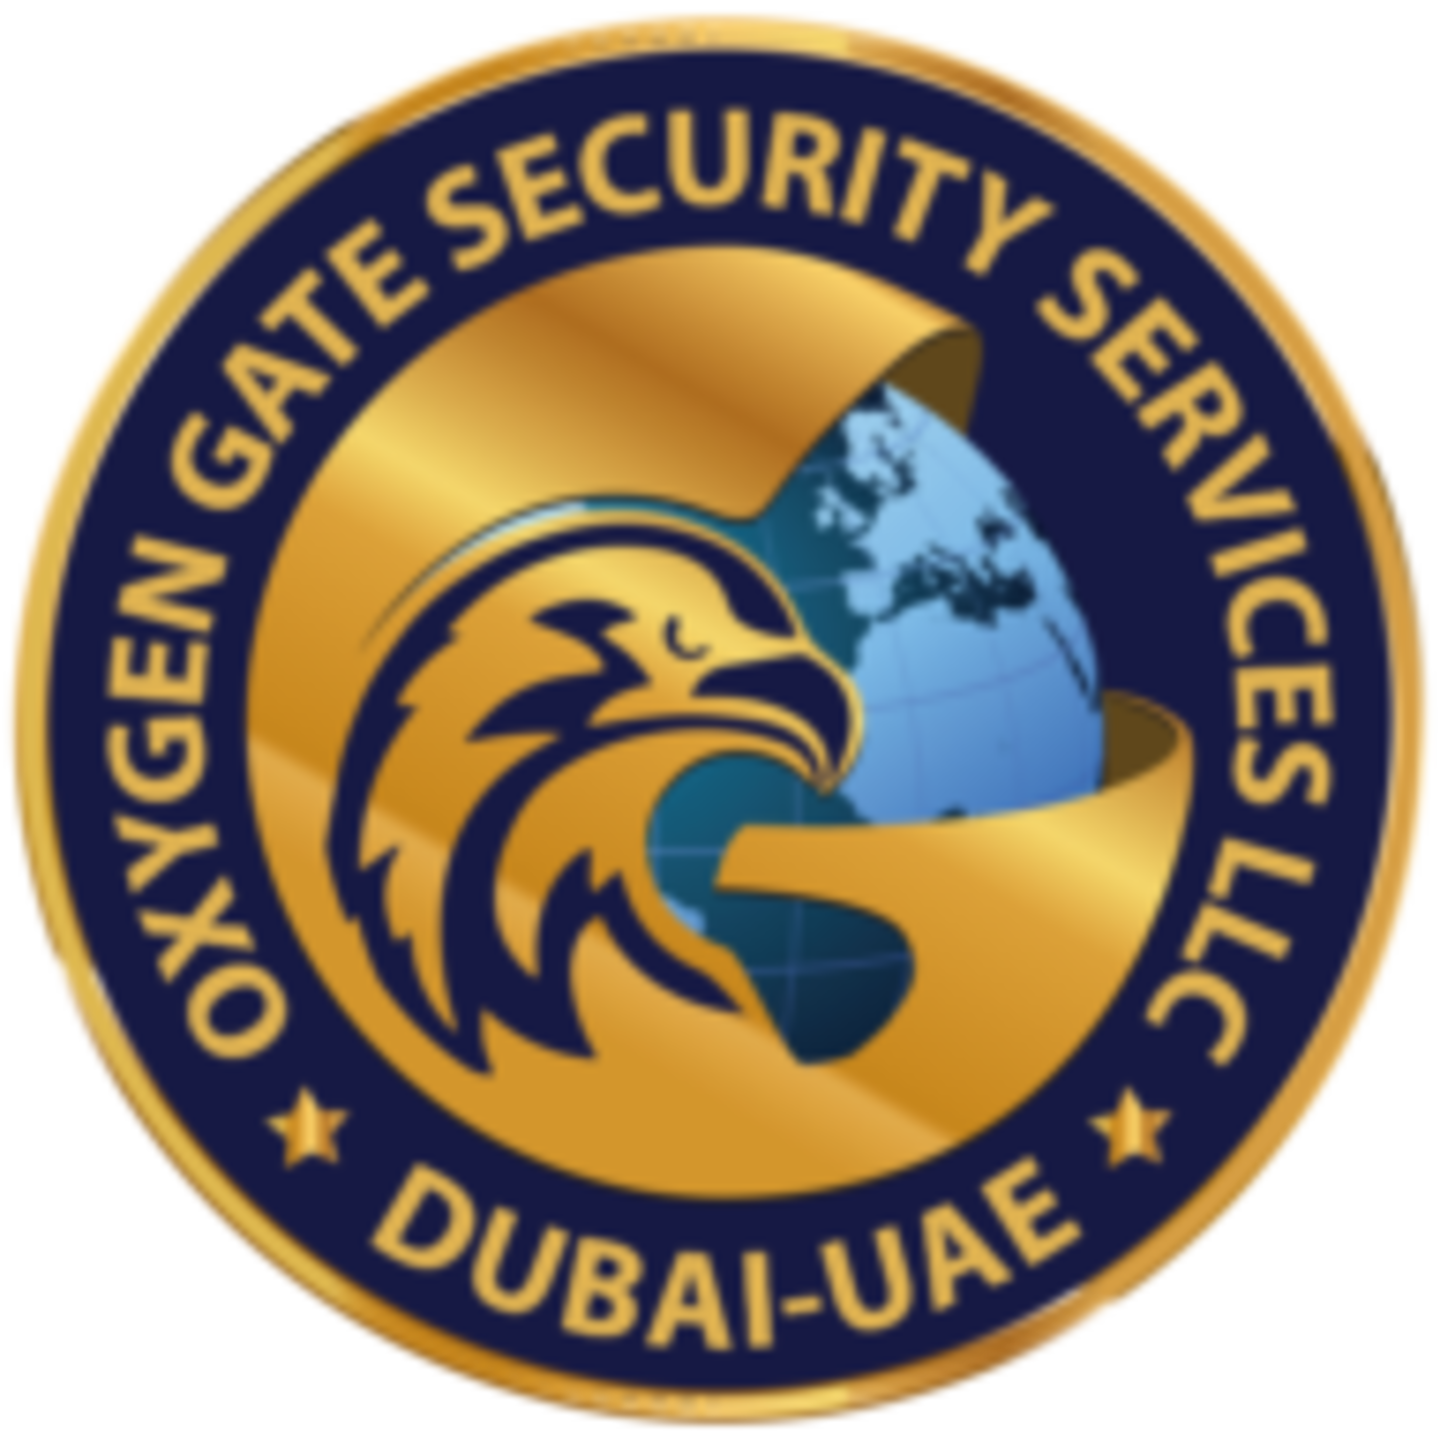 HiDubai-business-oxygen-gate-security-services-b2b-services-safety-security-port-saeed-dubai